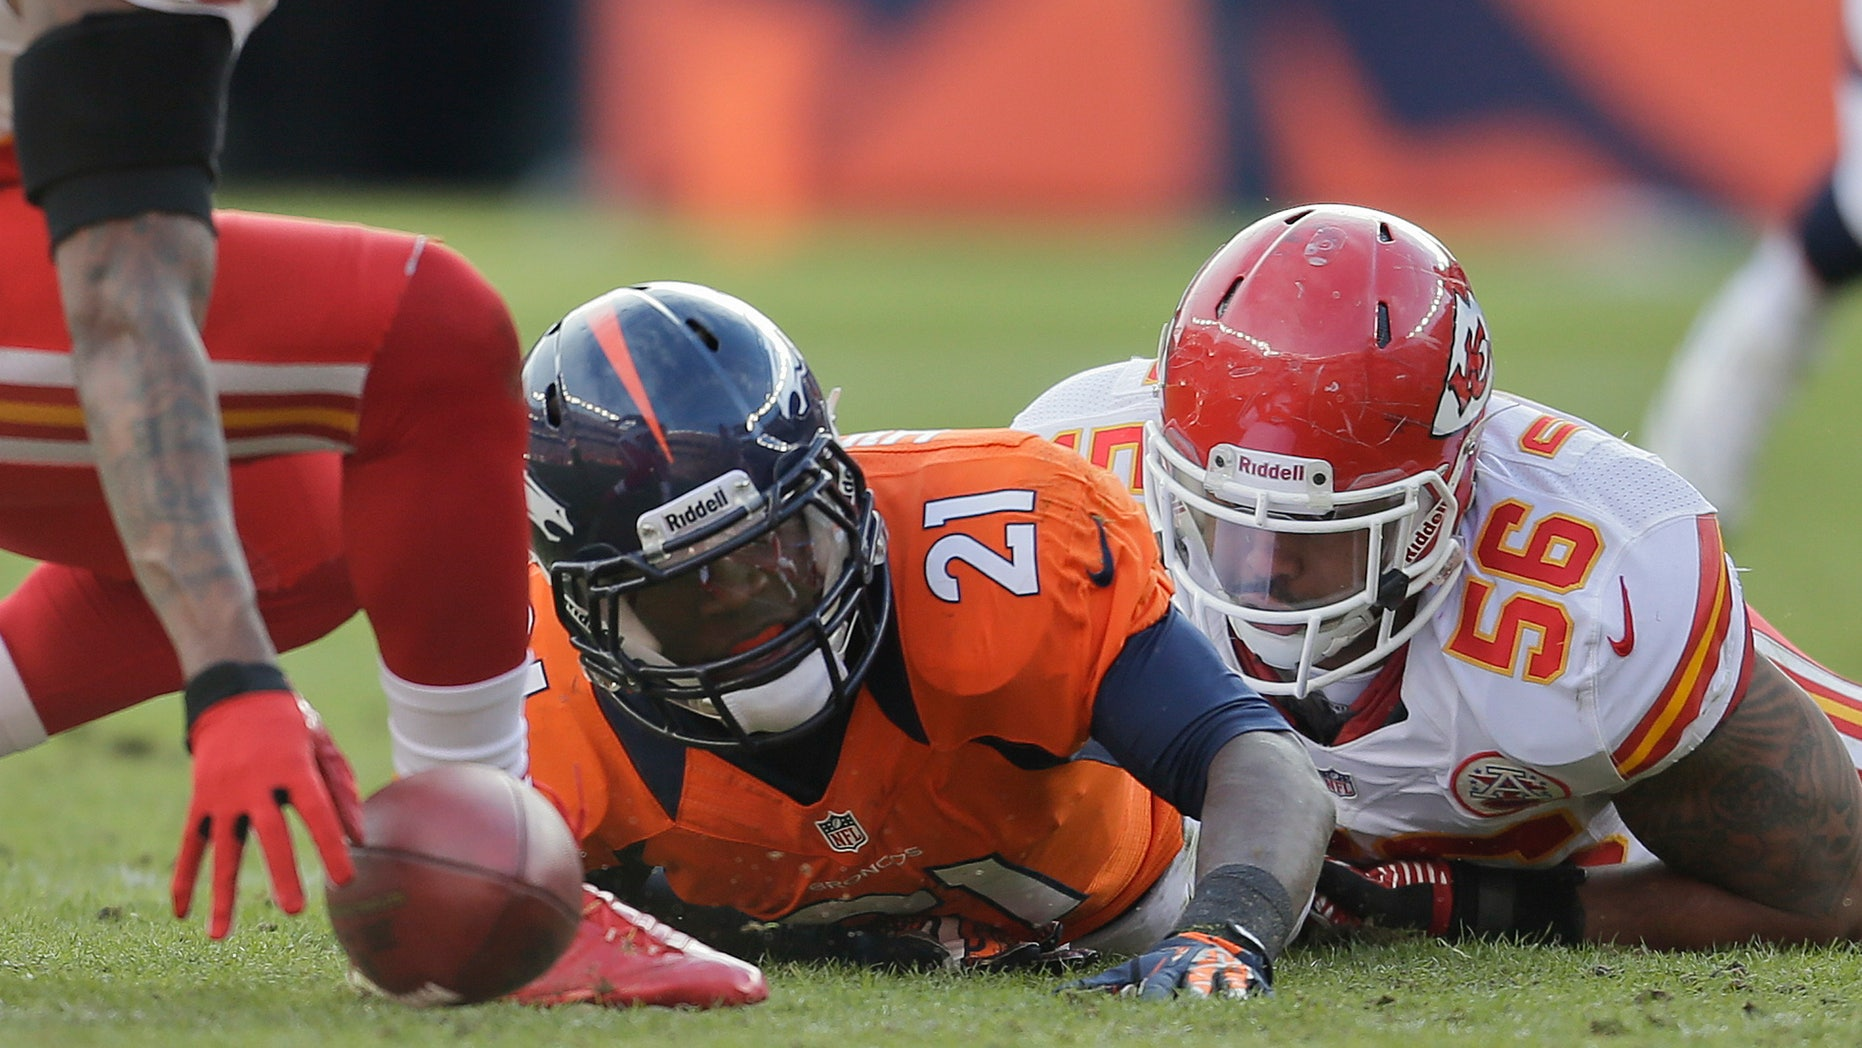 Denver Broncos running back Ronnie Hillman (21) fumbles the ball as he is tackled by Kansas City Chiefs inside linebacker Derrick Johnson (56) in the first quarter of an NFL football game, Sunday, Dec. 30, 2012, in Denver. Kansas City recovered the ball on the play.  (AP Photo/Joe Mahoney)